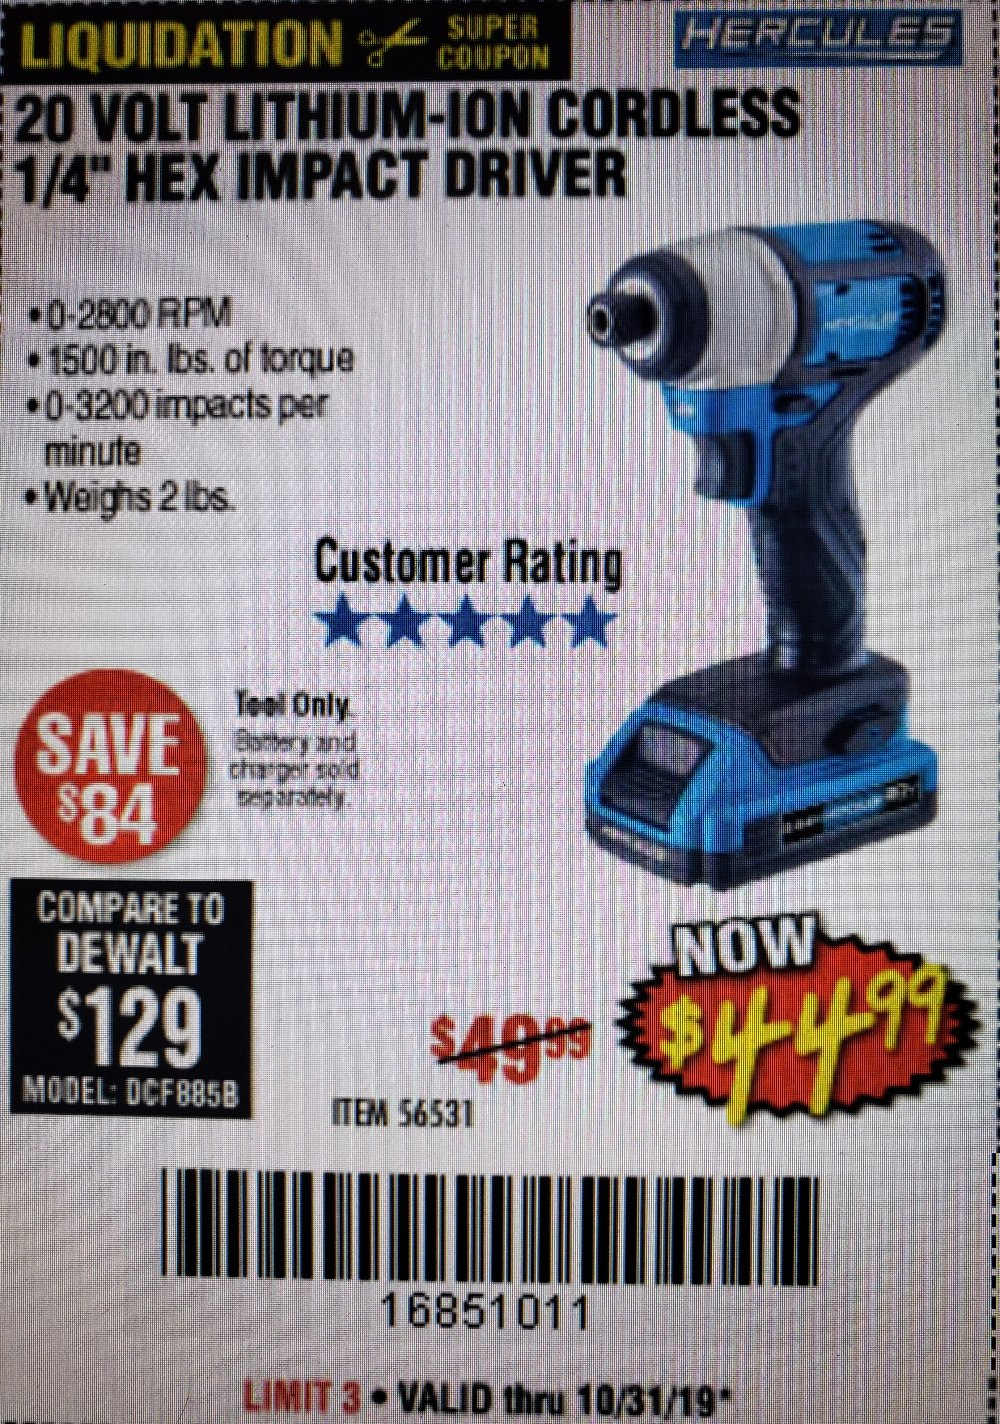 Harbor Freight Coupon, HF Coupons - 20 Volt Lithium-Ion Cordless 1/4 in Hex Impact Driver